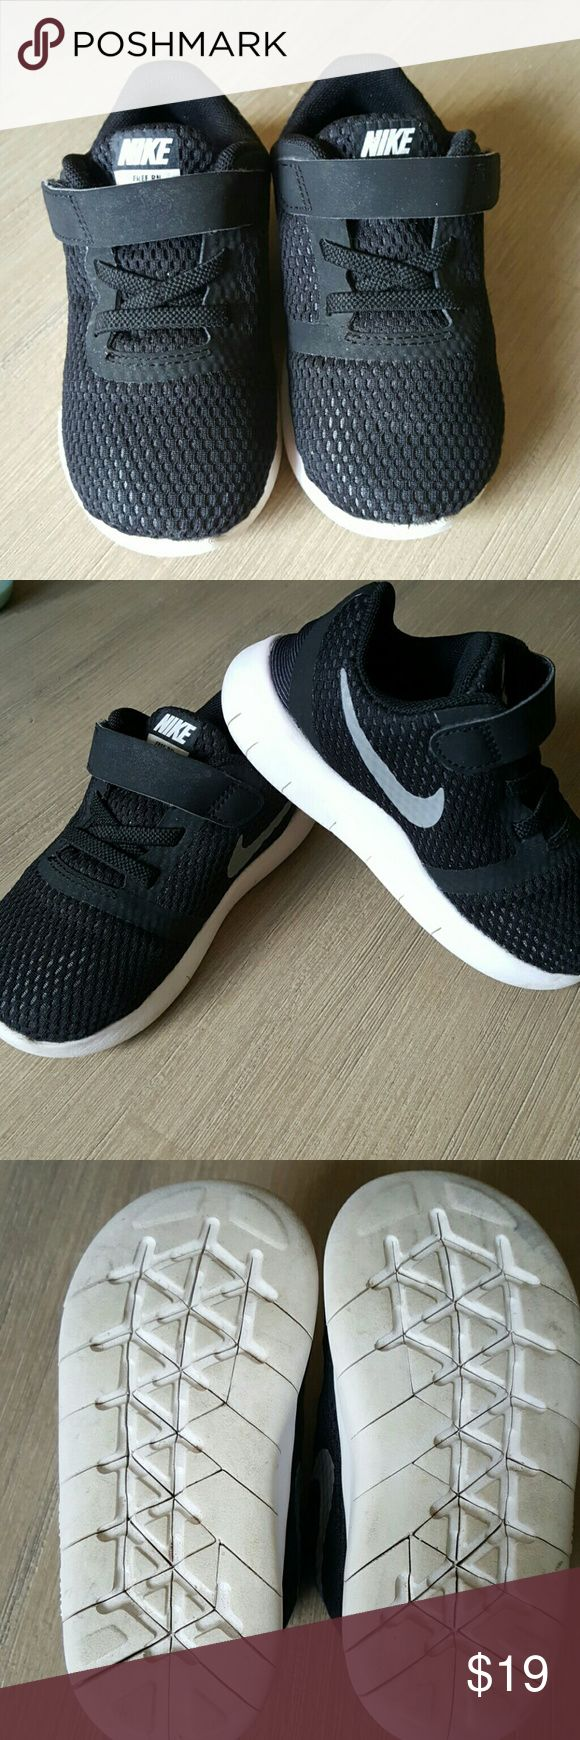 Nike - style  'FREE RN' boys running shoes Black/Anthracite/Metallic Silver, boys upper mesh, velcore closure, no lace. Good condition. Nike Shoes Sneakers